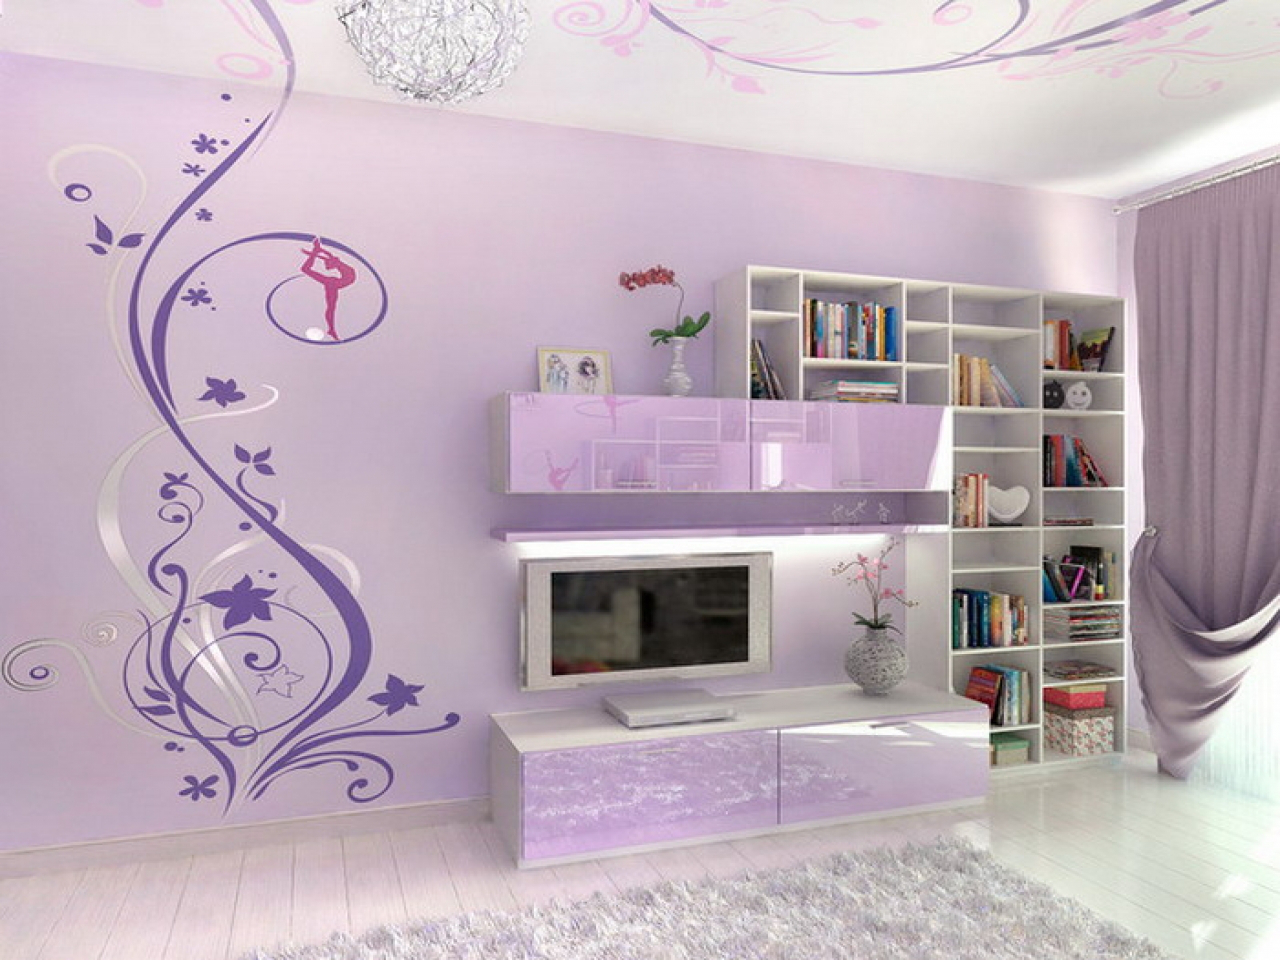 Interior Design For Girls Bedroom Wall Decor Of Lavender Bedrooms Teen Ideas Teen Acnn Decor,Farmhouse French Country Master Bedroom